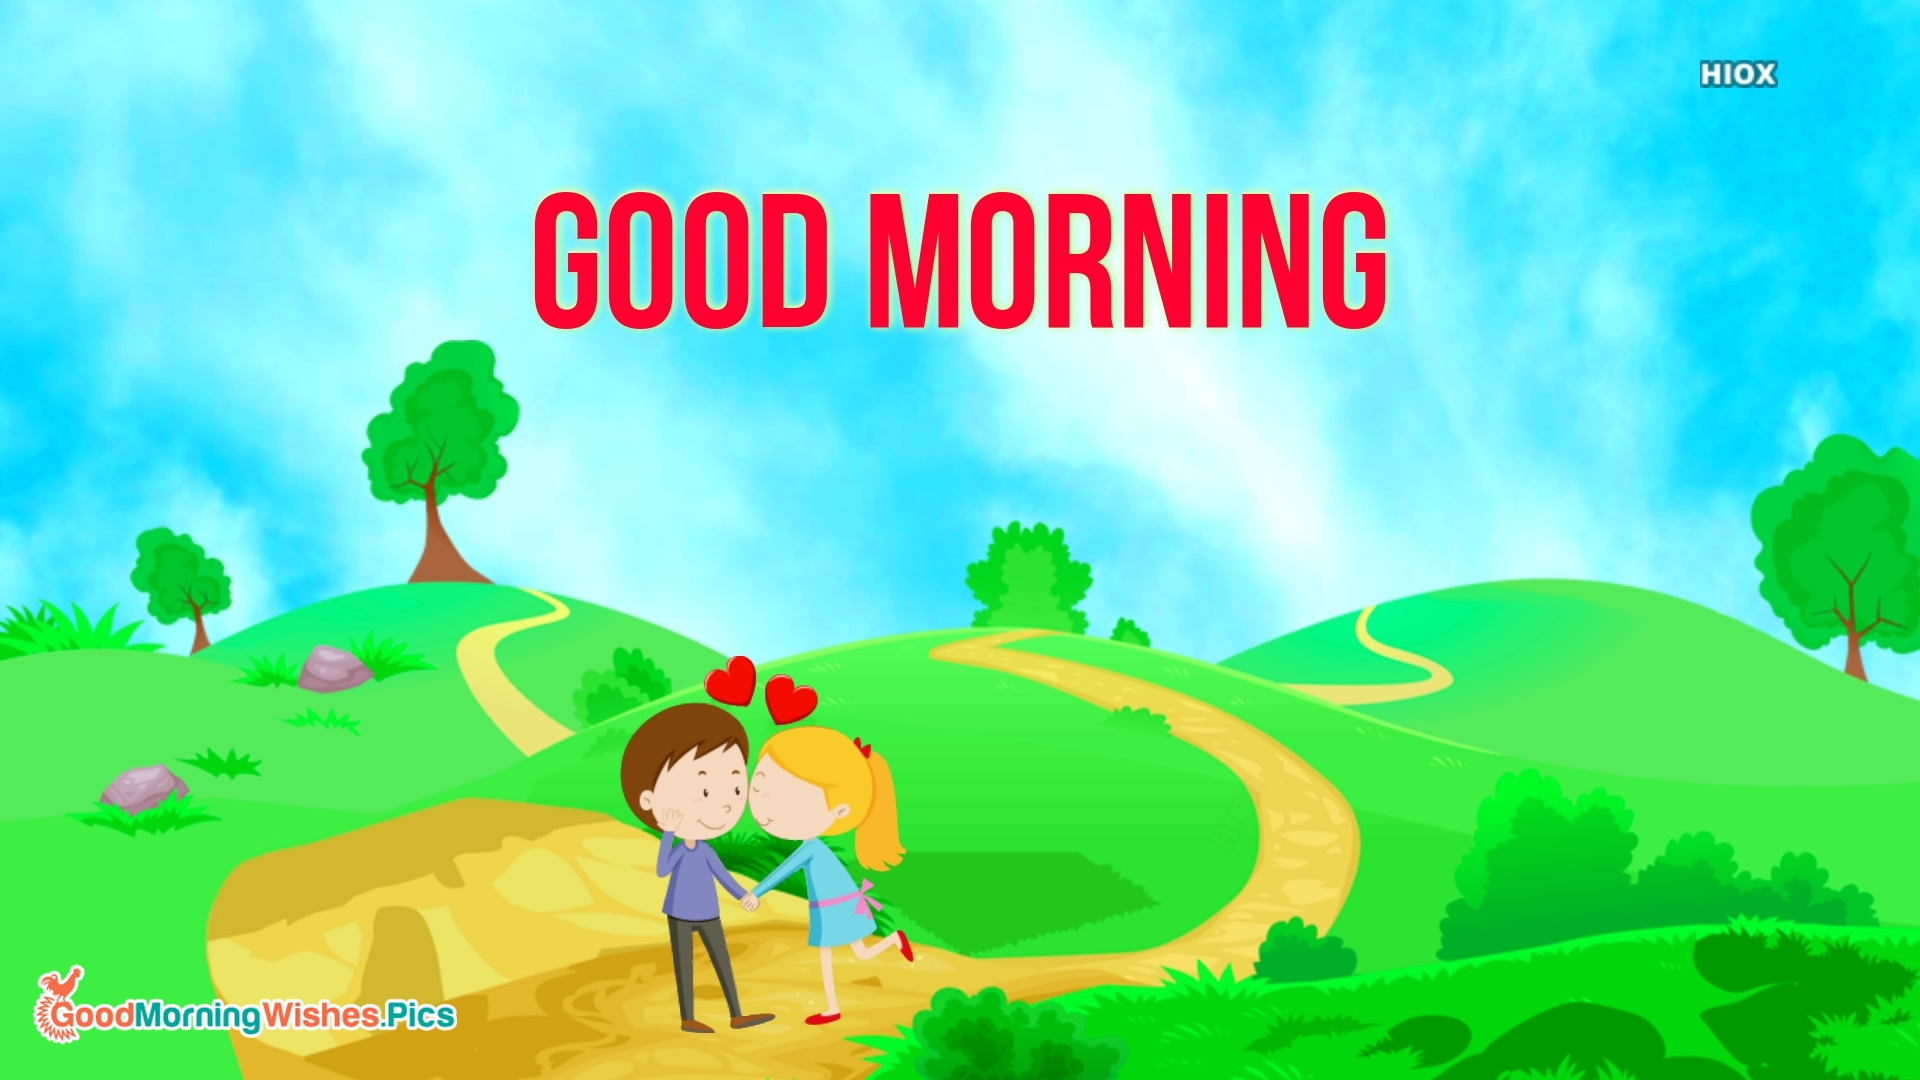 Good Mroning Wishes With Couple